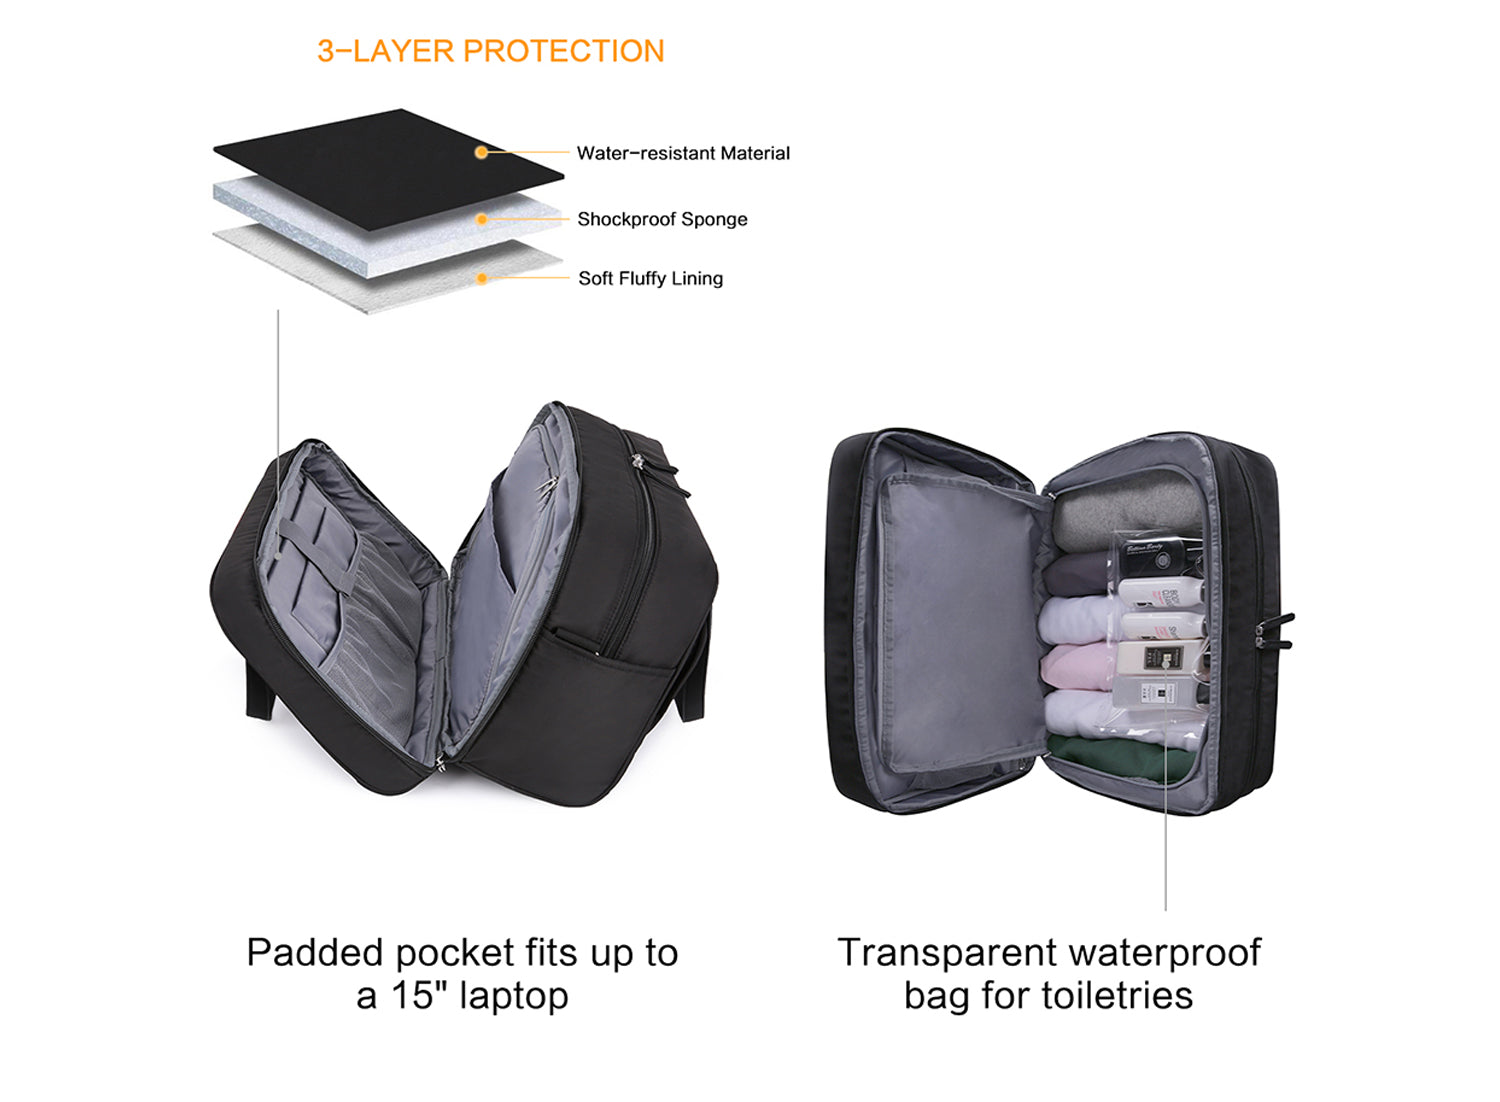 Classic Travel Duffle Bag Mini Suitcase Design for Business Trip, Weekender